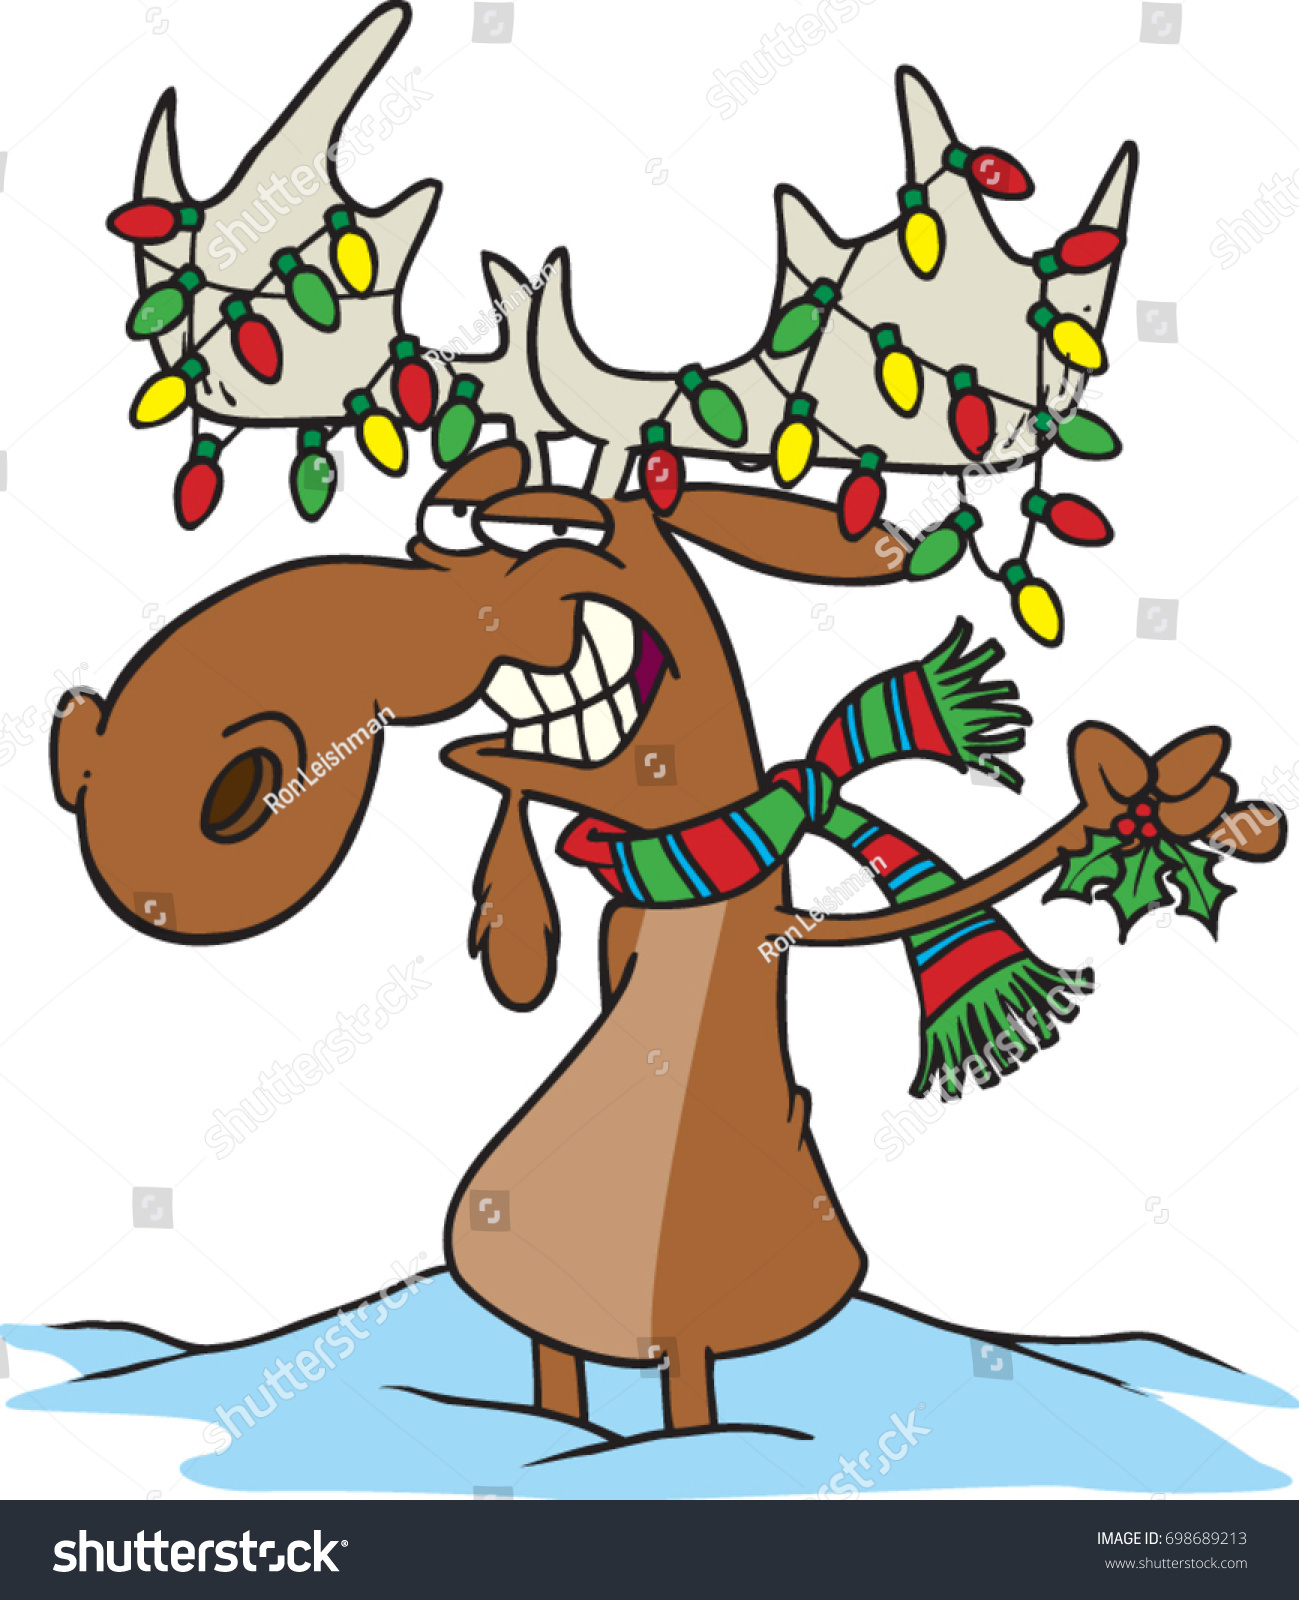 cartoon moose dressed up with christmas lights wearing a scarf and holding mistletoe